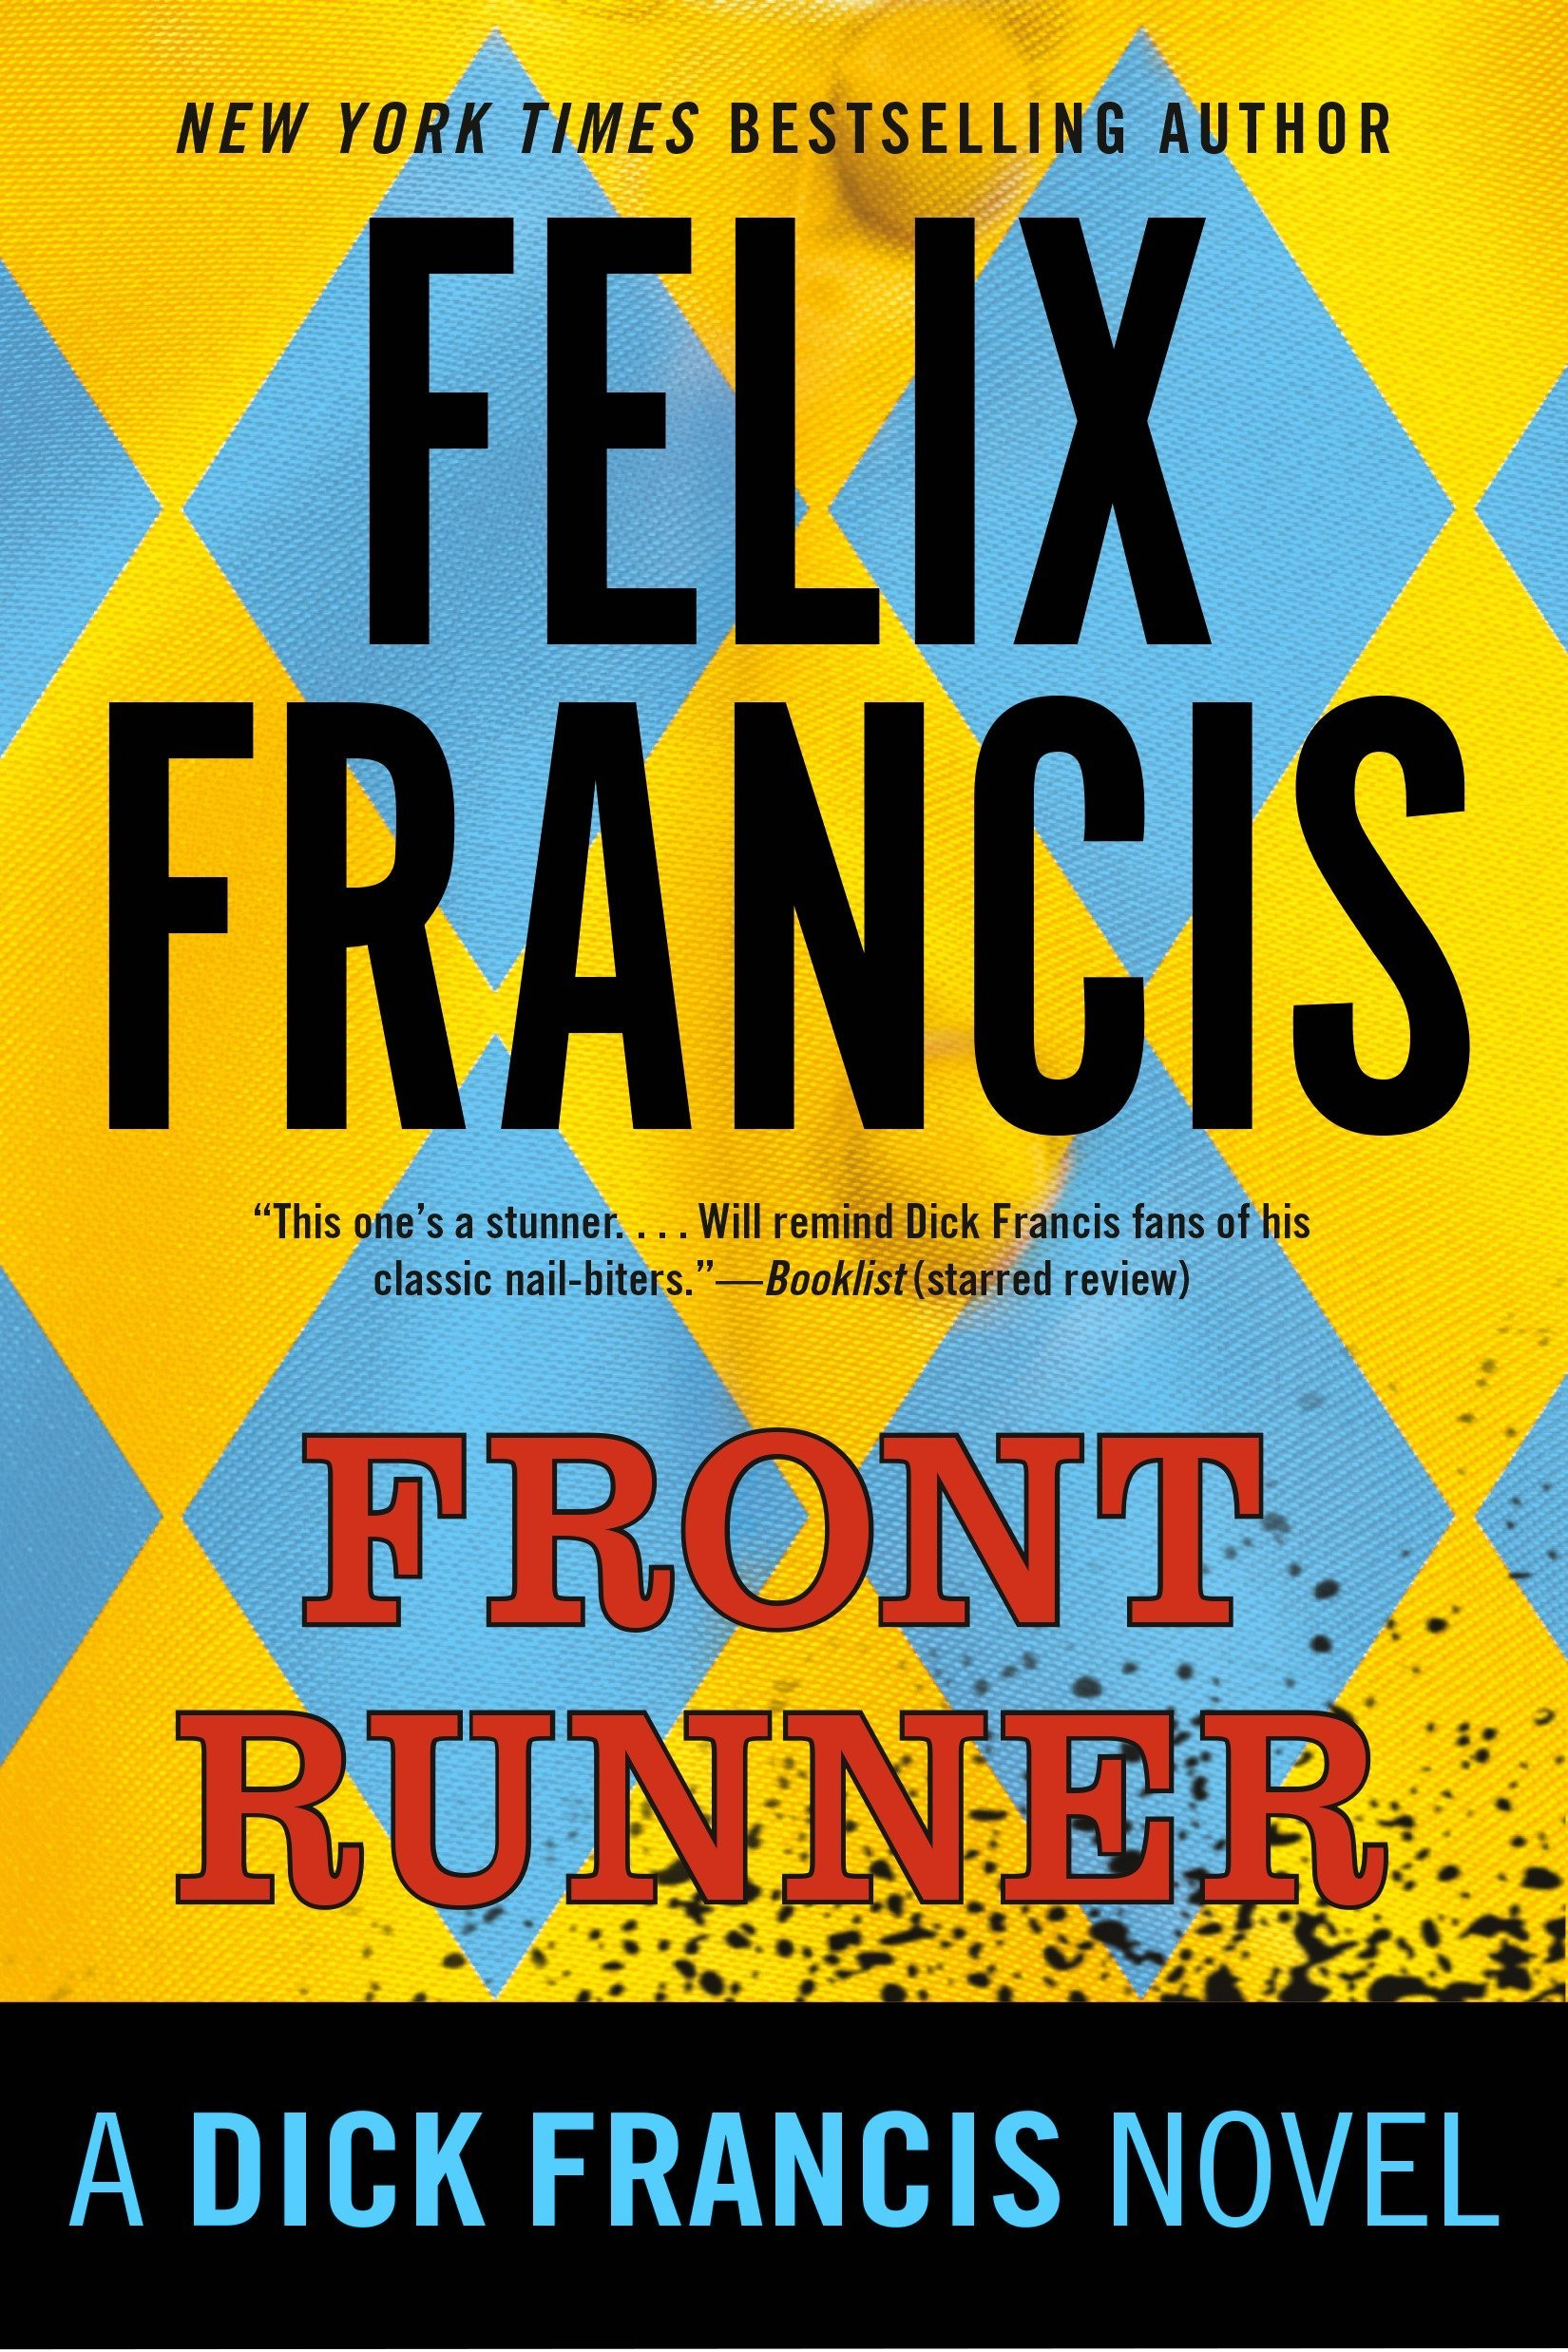 Final, dick francis review consider